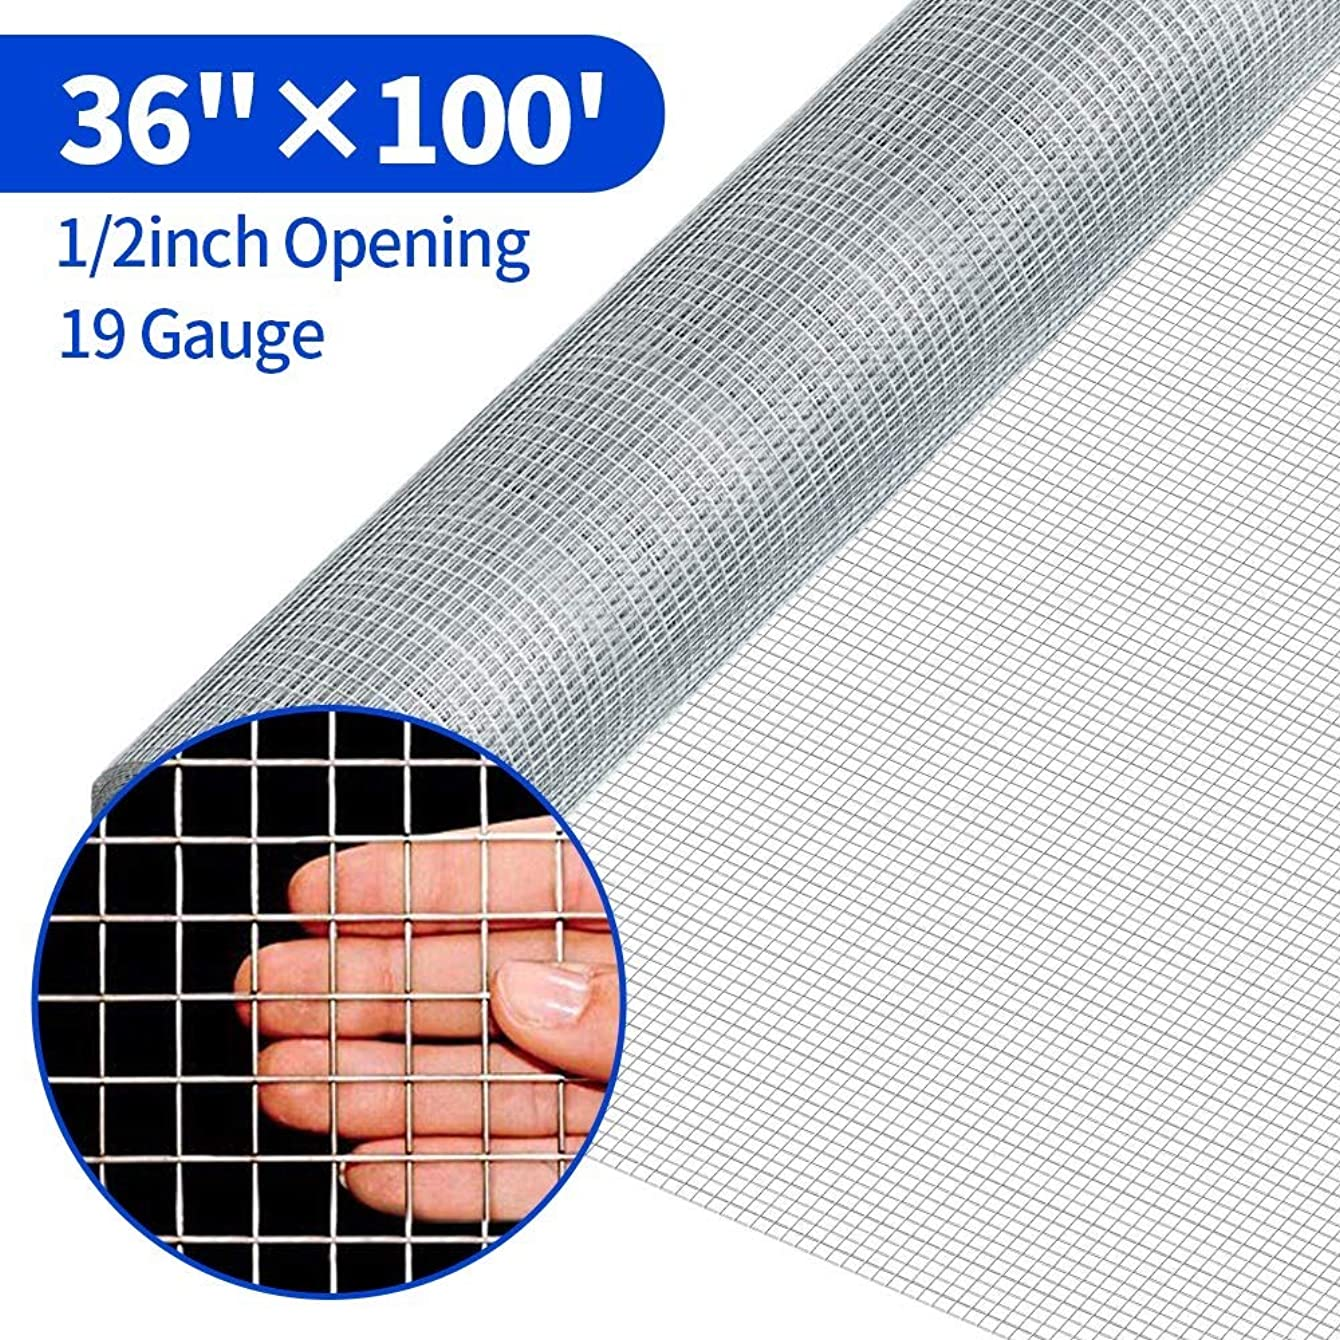 1/2 Hardware Cloth 36 x 100 19 gauge Galvanized Welded Wire Metal Mesh Roll Vegetables Garden Rabbit Fencing Snake Fence for Chicken Run Critters Gopher Racoons Opossum Rehab Cage Wire Window